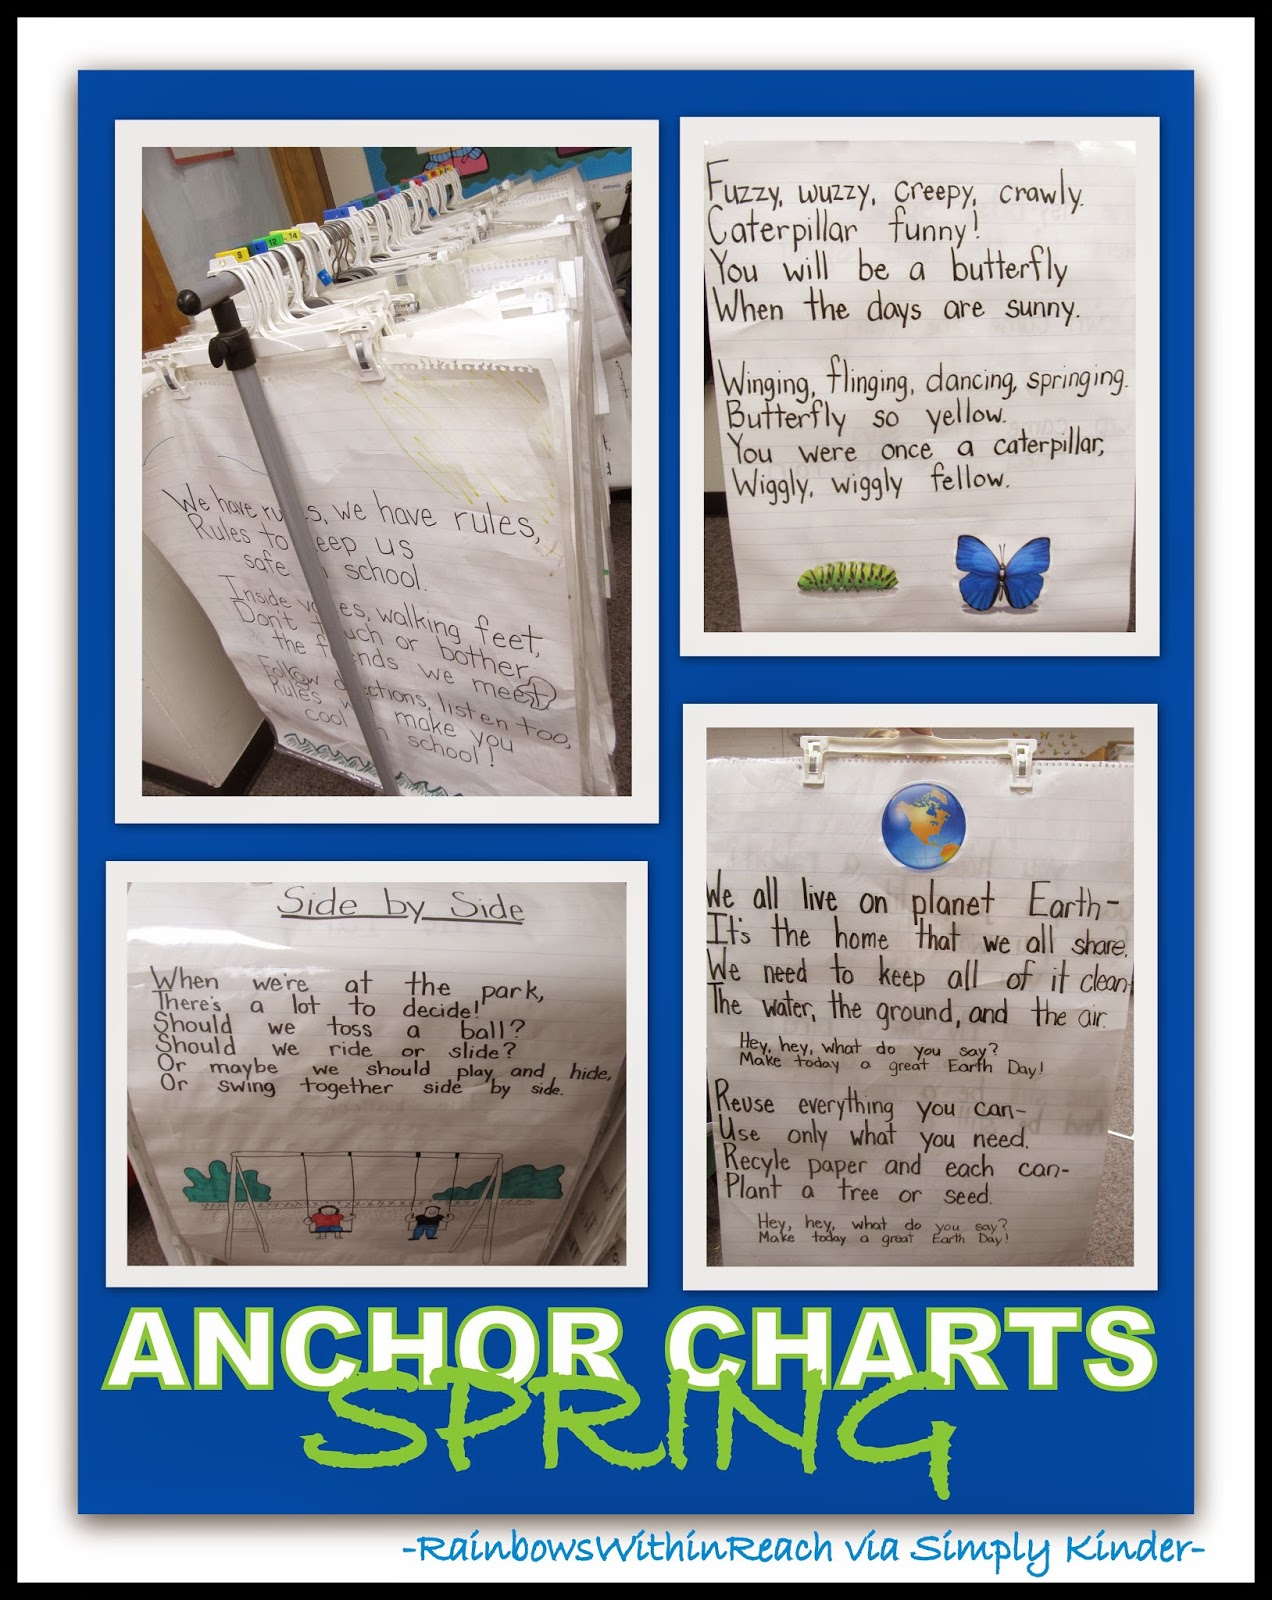 Anchor Charts for Spring from RainbowsWithinReach via SimplyKinder